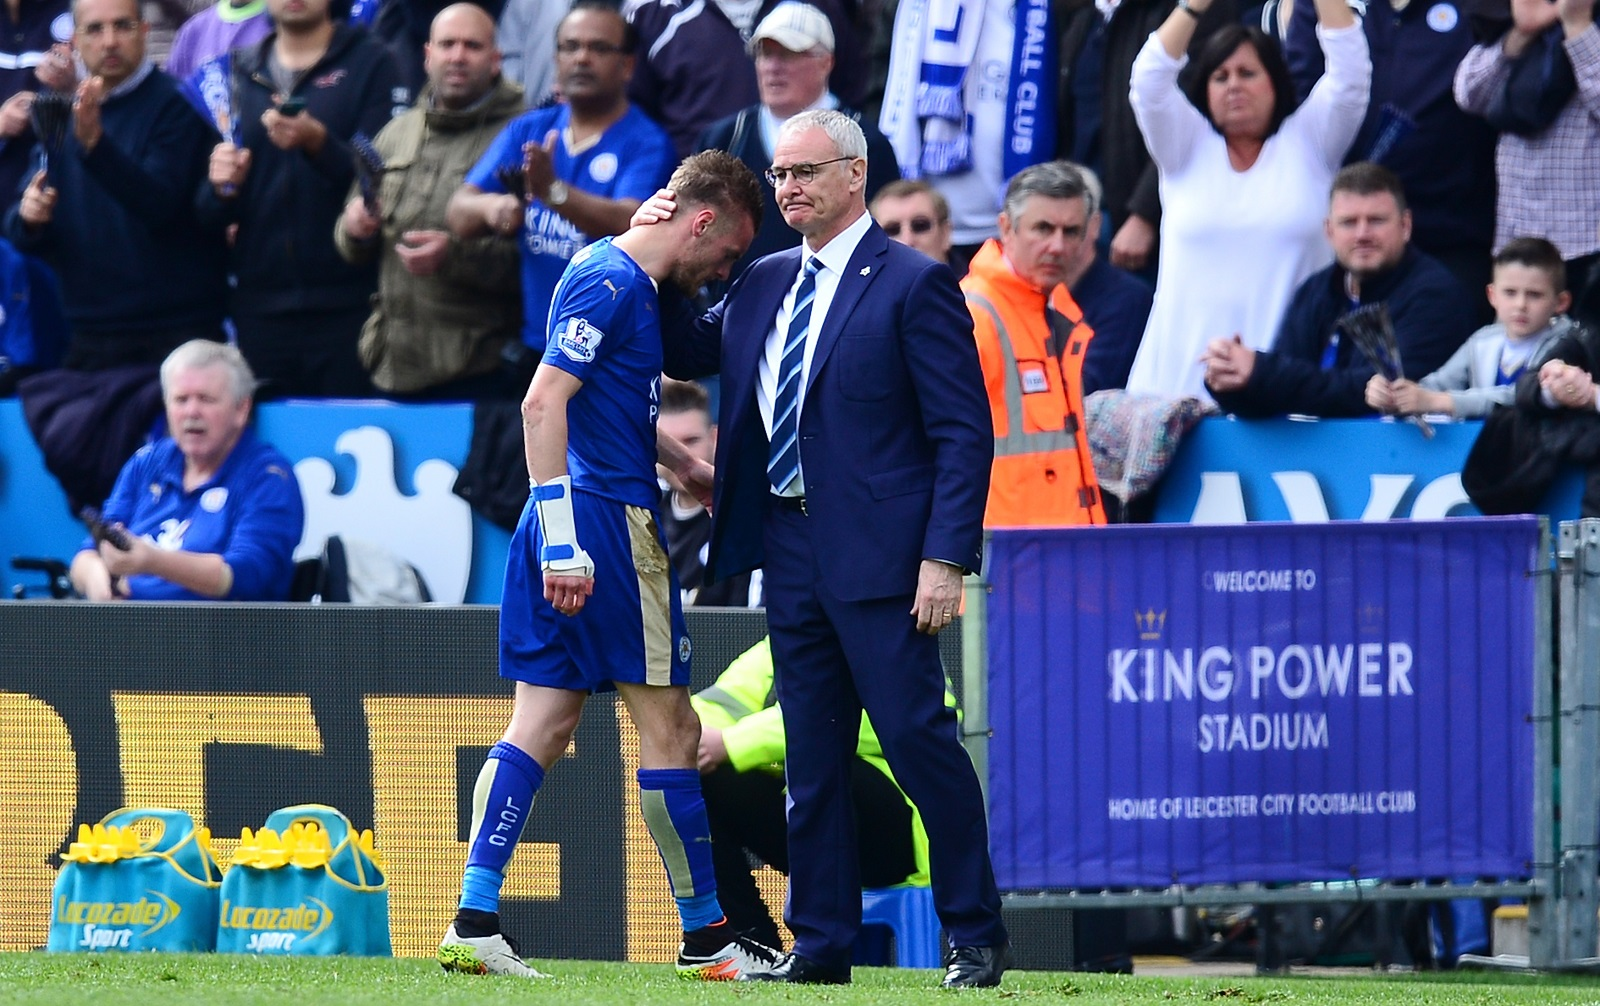 Leicester City FC head coach Claudio Ranieri, right, has led the Foxes to the cusp of an English Premier League title. (Getty Images)